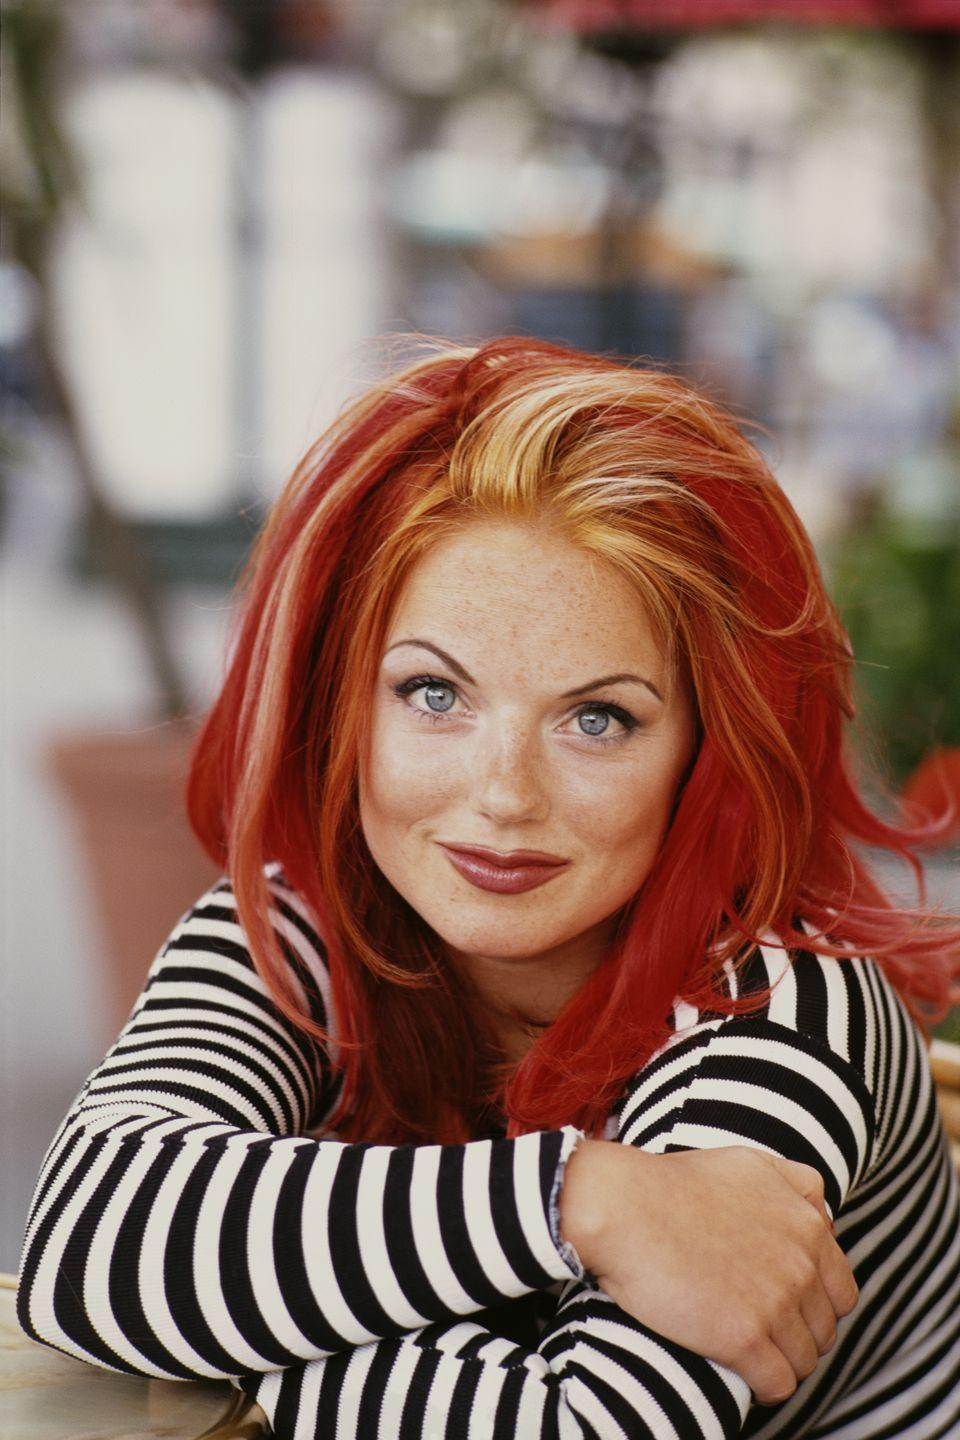 <p>Leave it to the Spice Girls—especially daring member Geri Halliwell, a.k.a. Ginger Spice—to lead millions of girls to beg their moms and dads to let them get streaks in their hair of bright red, orange, pink, and other colors.</p>